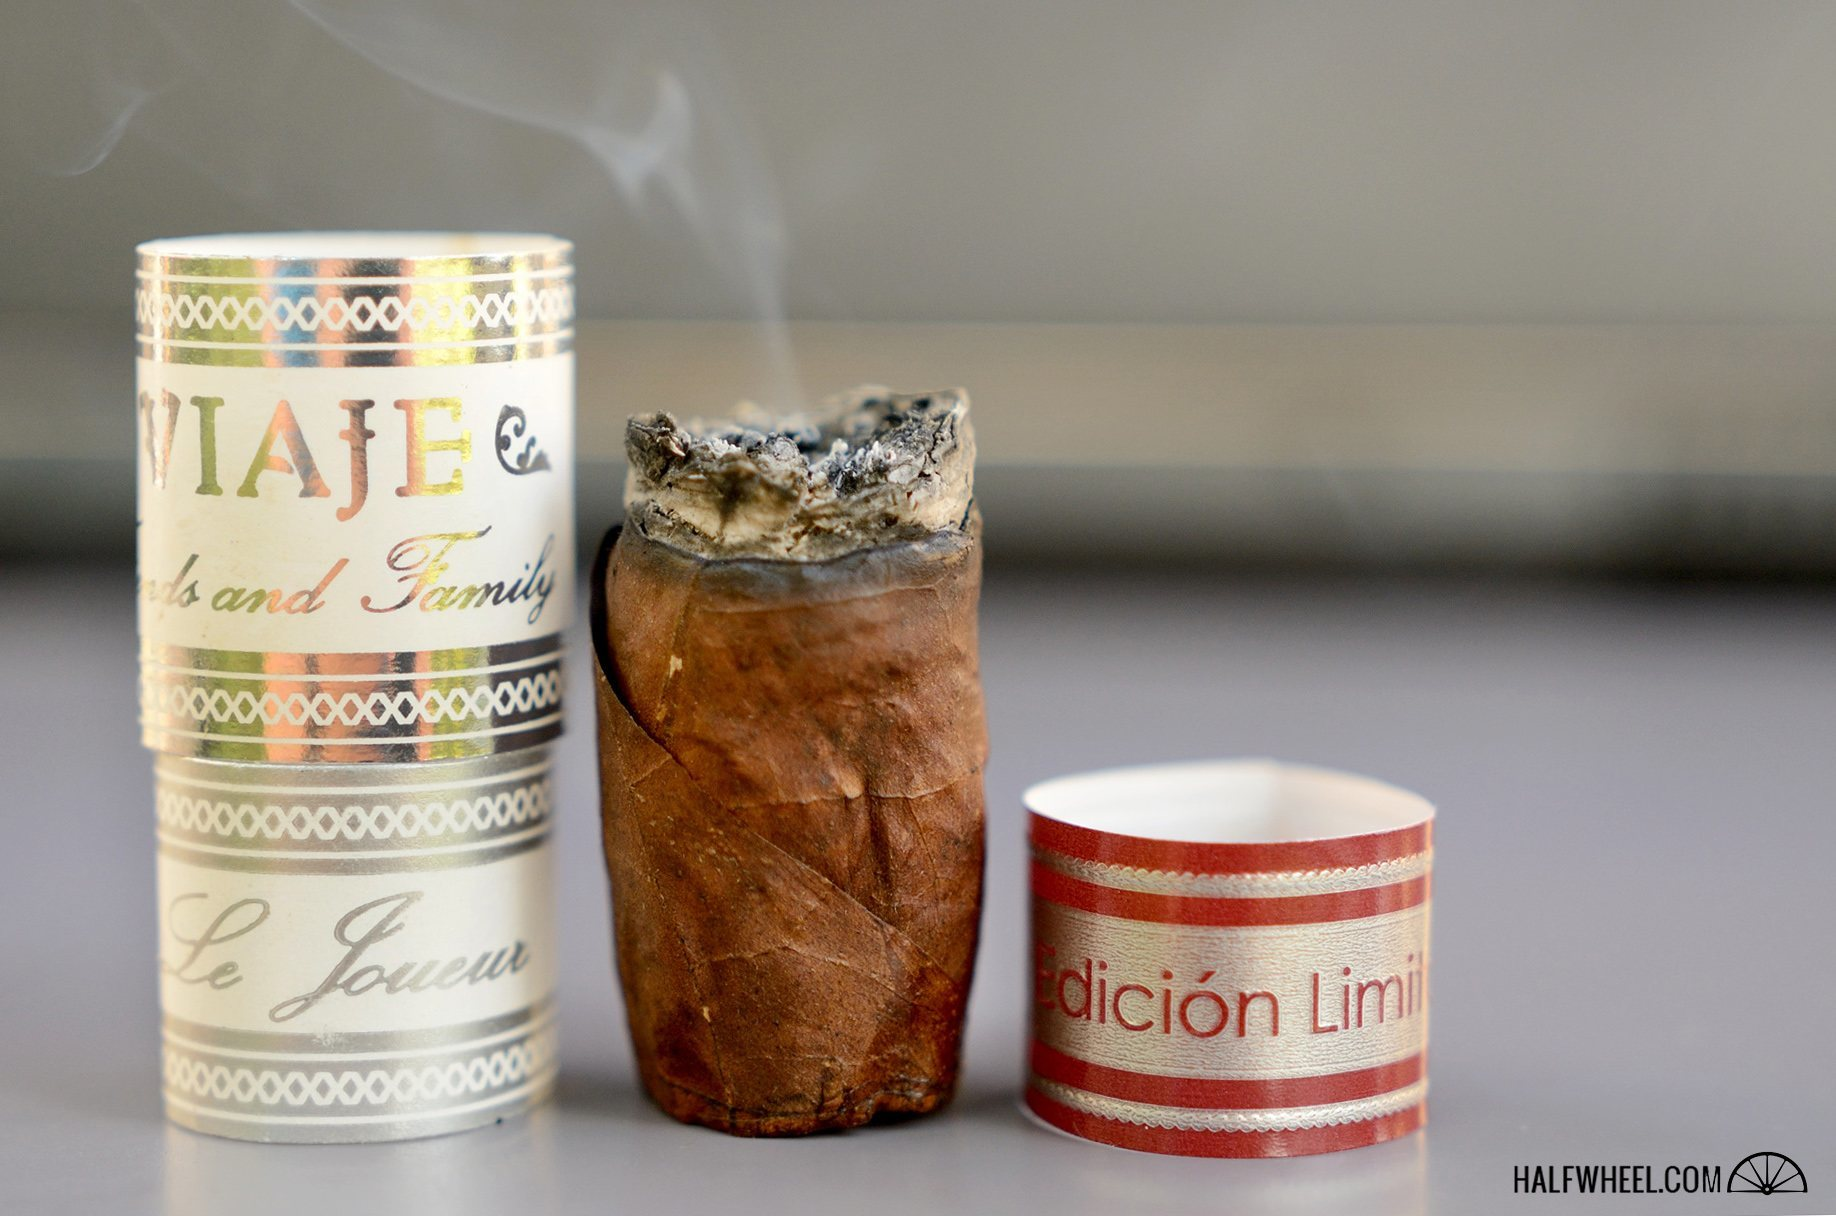 Viaje Friends and Family Edicion Limitada Le Joueur 4